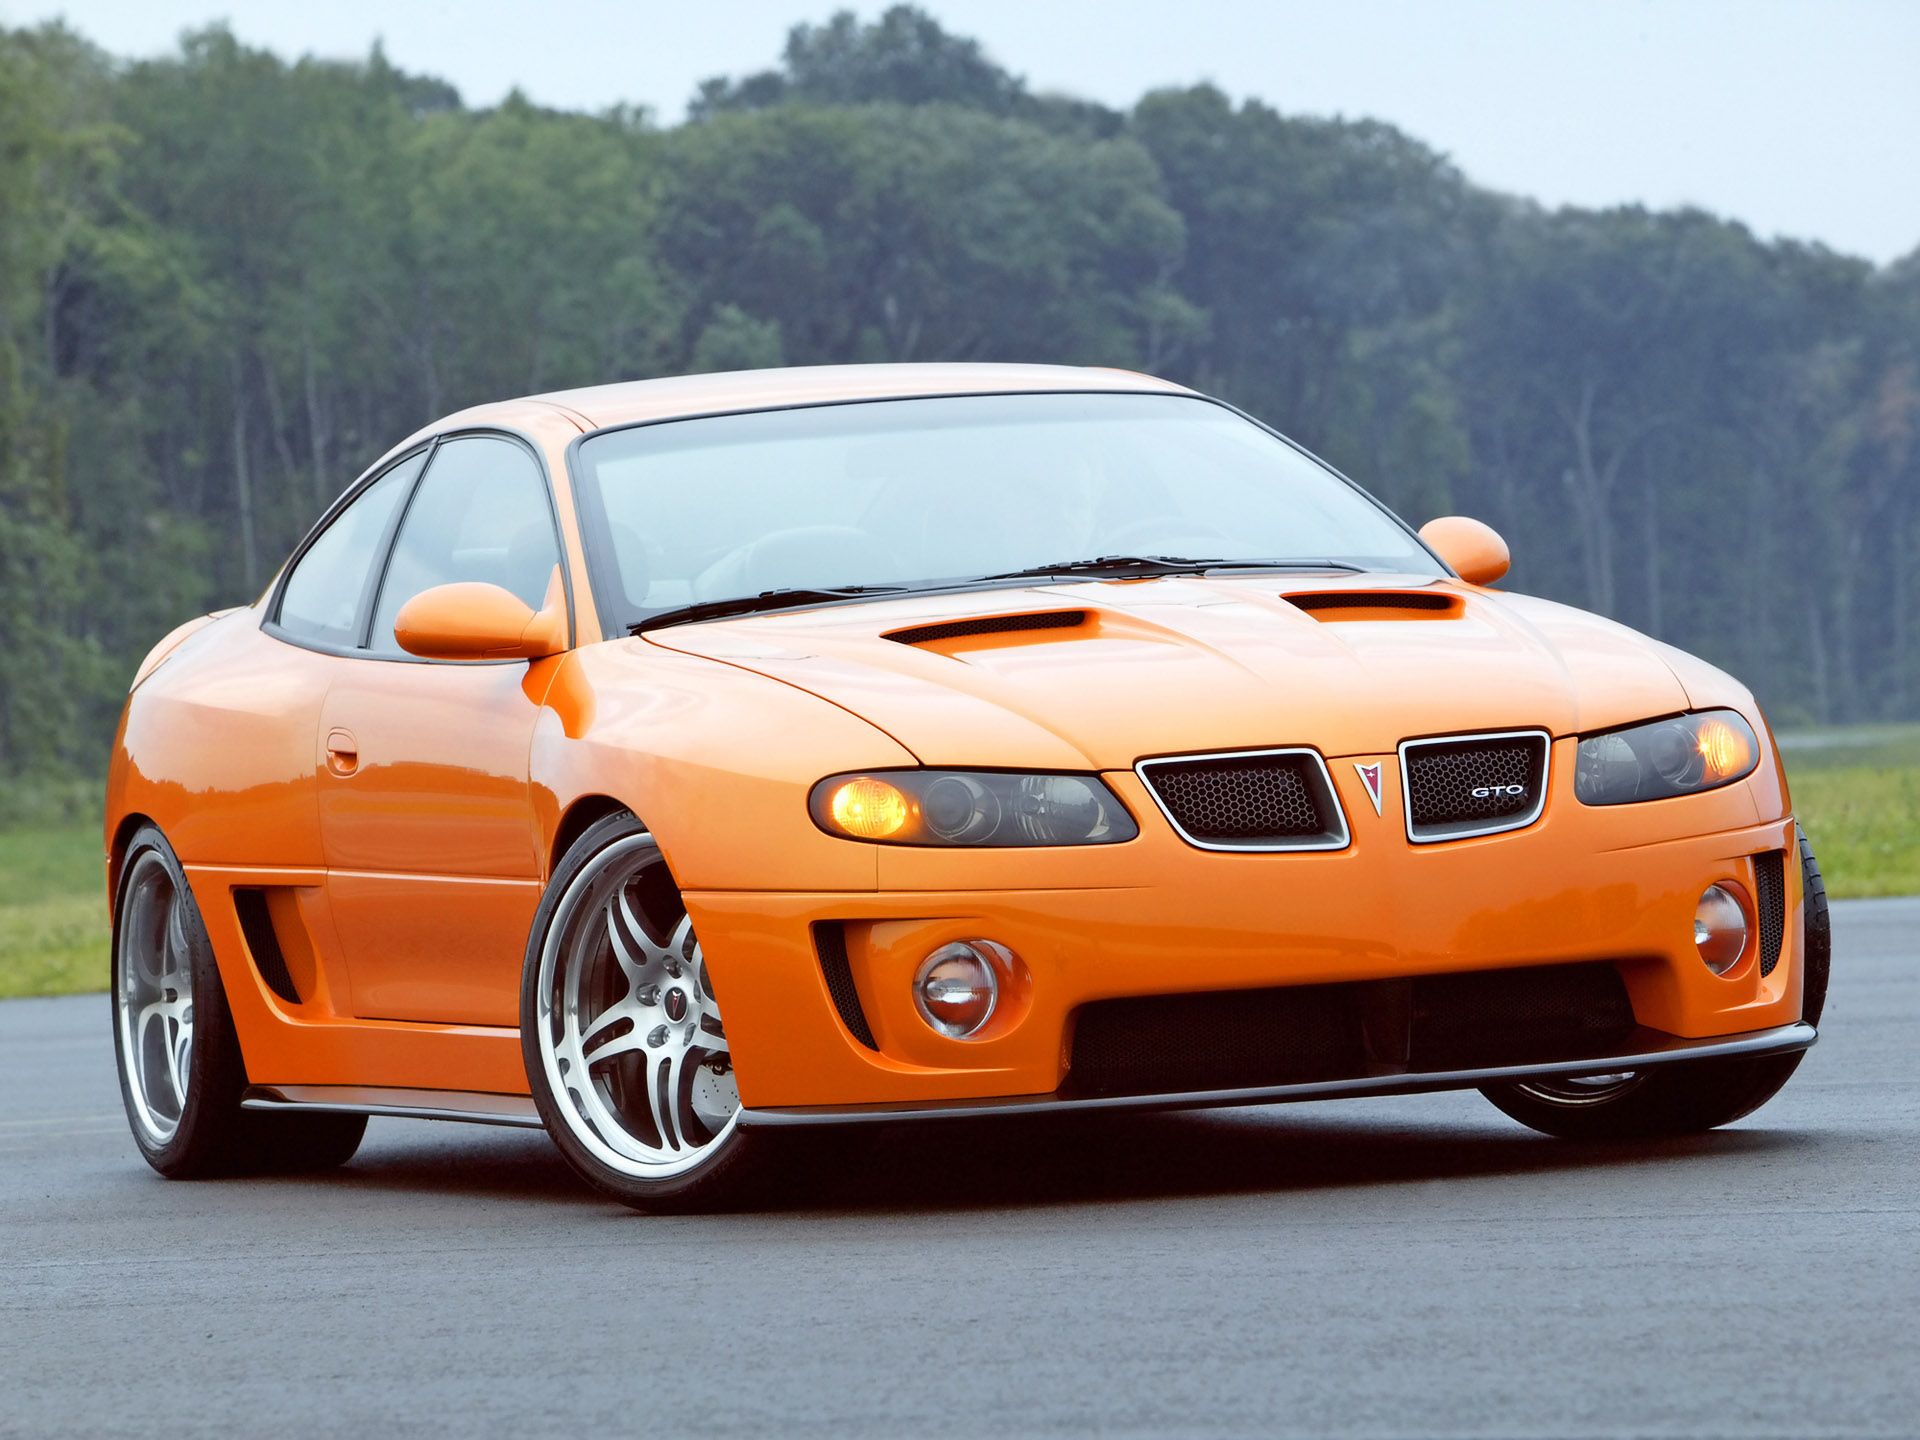 Pontiac GTO 2003: Review, Amazing Pictures and Images – Look at the car